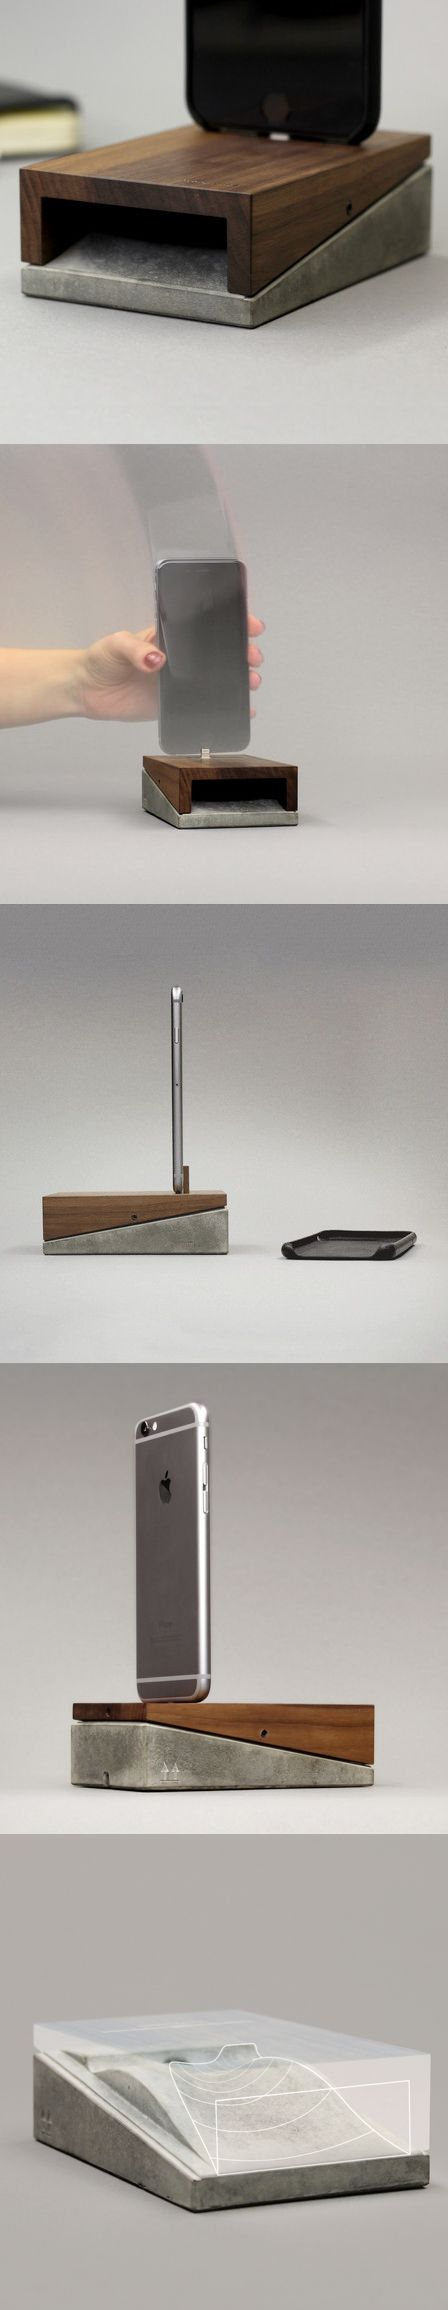 The Mobi combines the roughness of concrete and the elegance of wood. The result is a sleek, adaptable charging station, concealed in a minimalistic clean-lined object. Smartly equipped with a micro-suction pad free of adhesives, it can be affixed securely to any flat surface, supporting the iPhone with or without a case and enabling one-handed plugging and unplugging.